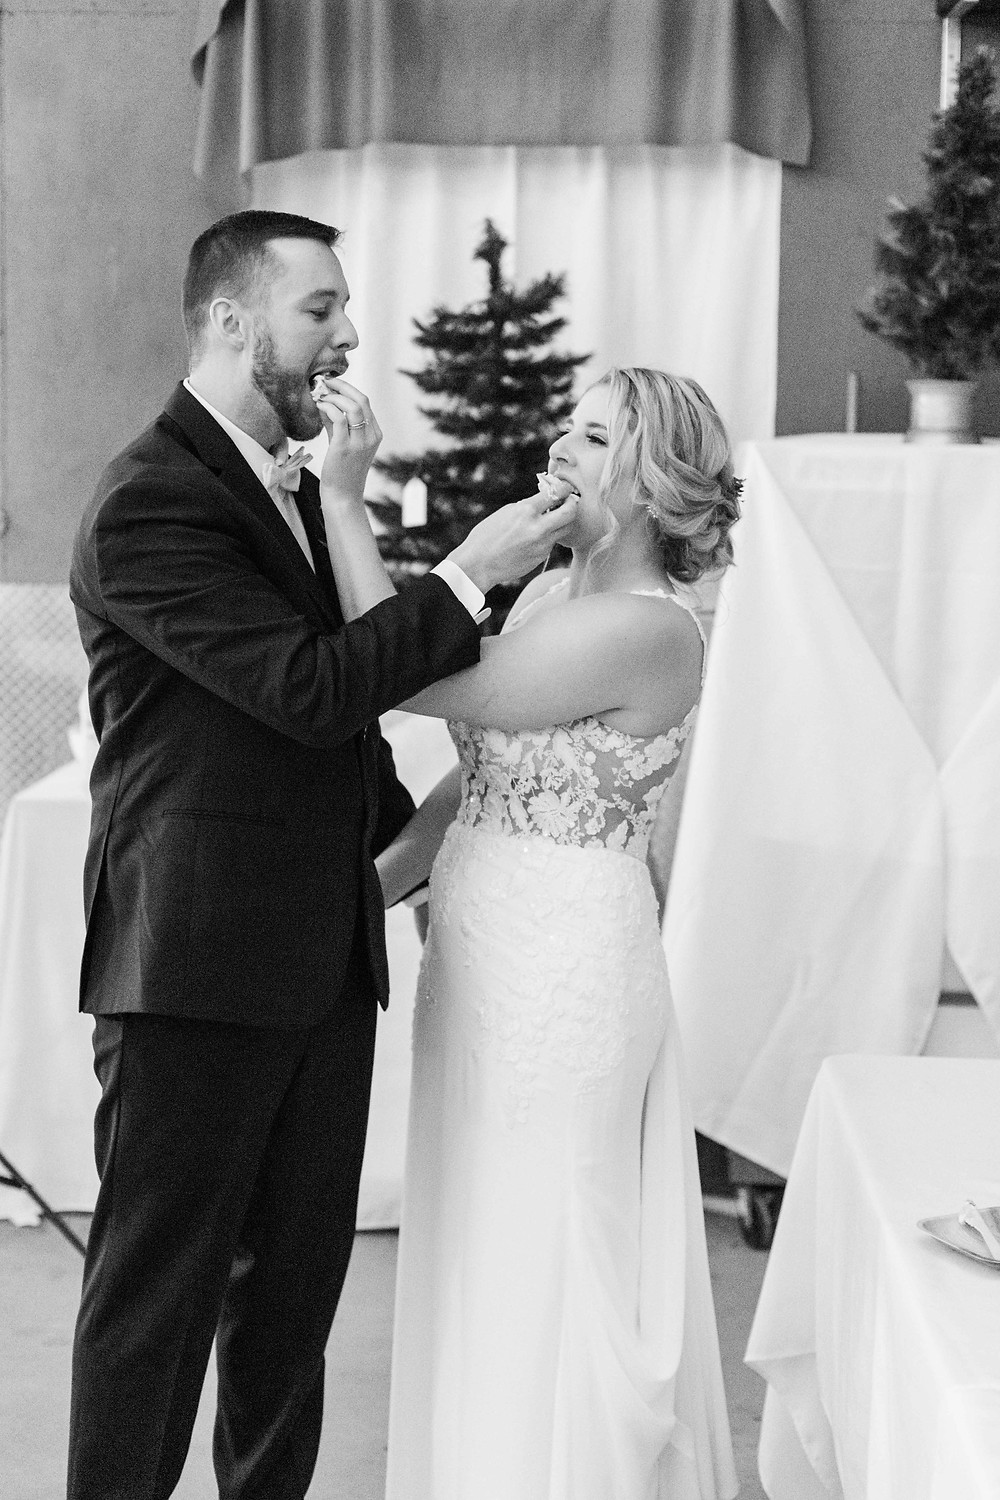 josh and Andrea photography husband and wife team michigan winter reception cake cutting